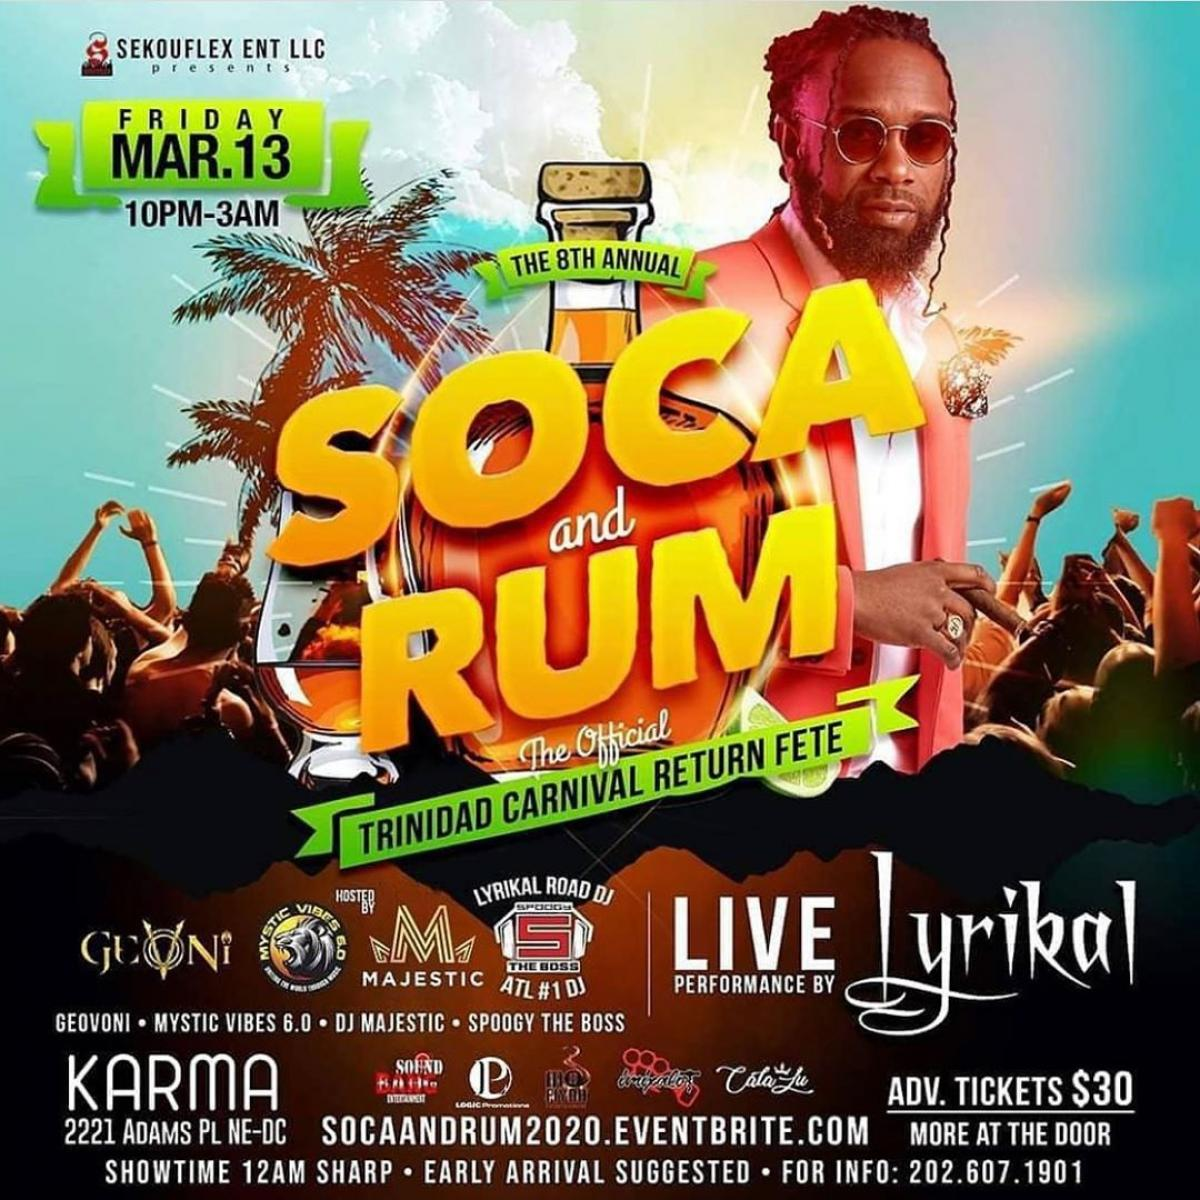 Soca and Rum: The Official Carnival Return Fete flyer or graphic.